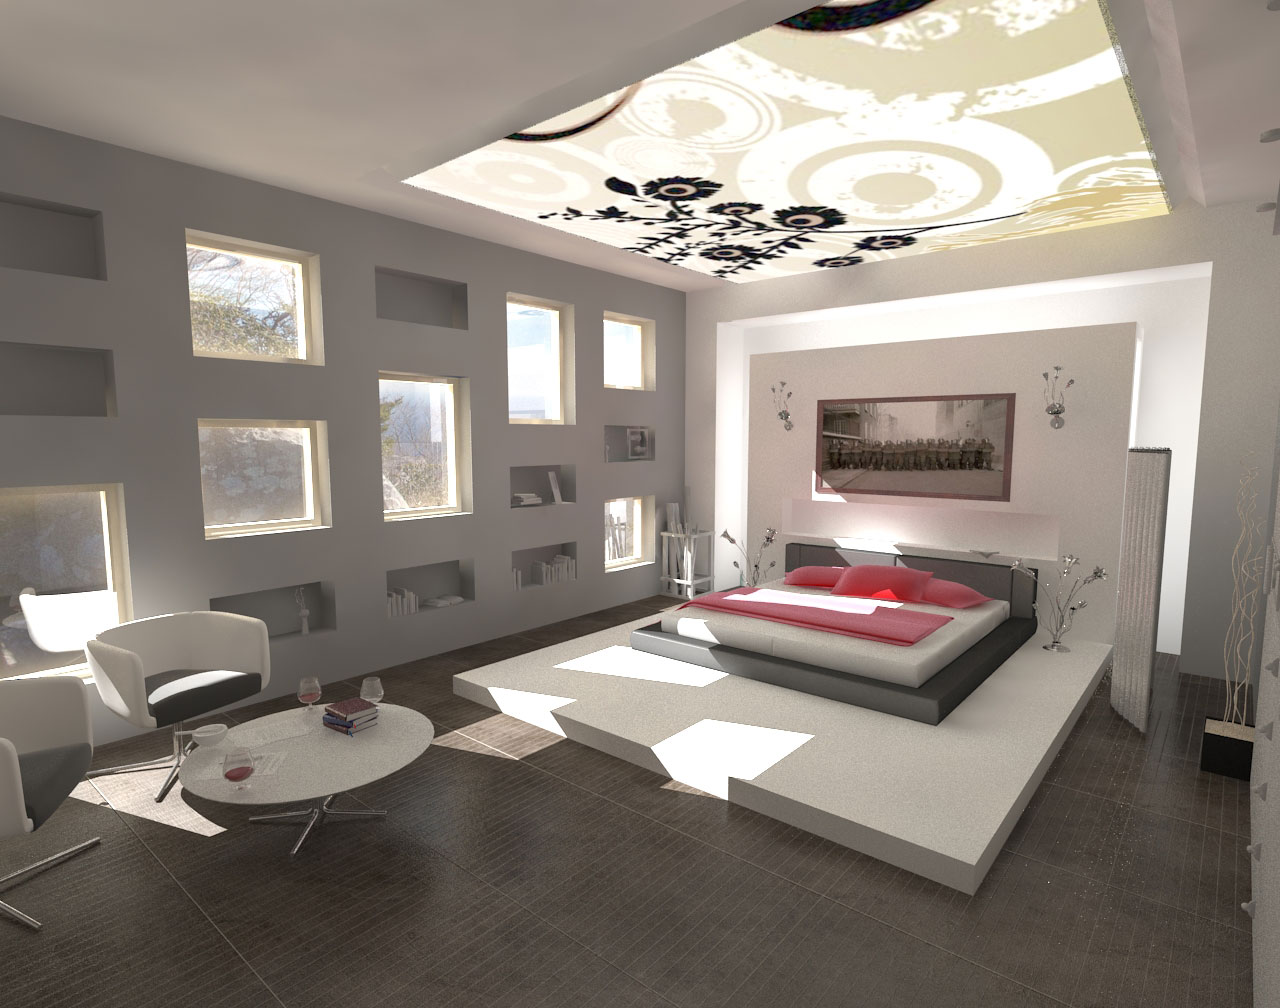 Decorations minimalist design modern bedroom interior for Bedroom interior design images